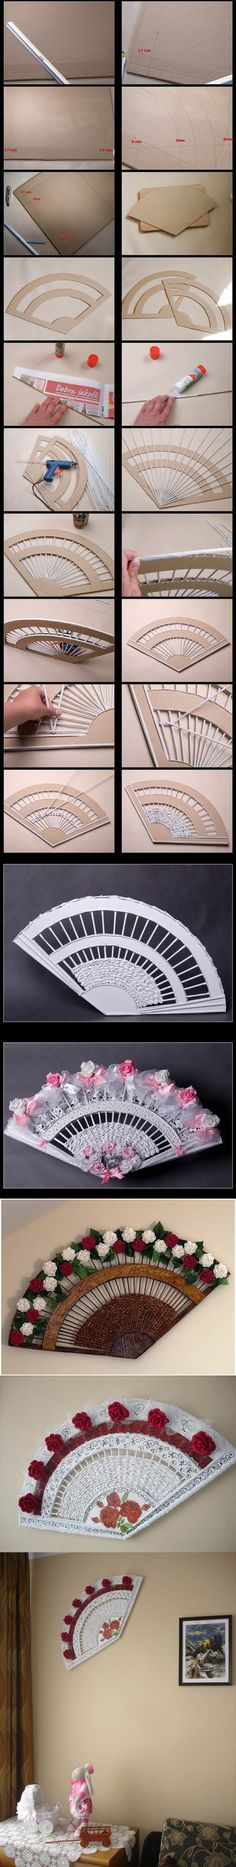 DIY Decorative Fan from Old Newspaper and Cardboard 2 gift packing tray. Diy Projects To Try, Crafts To Do, Craft Projects, Arts And Crafts, Craft Ideas, Decor Ideas, Newspaper Crafts, Old Newspaper, Fan Decoration